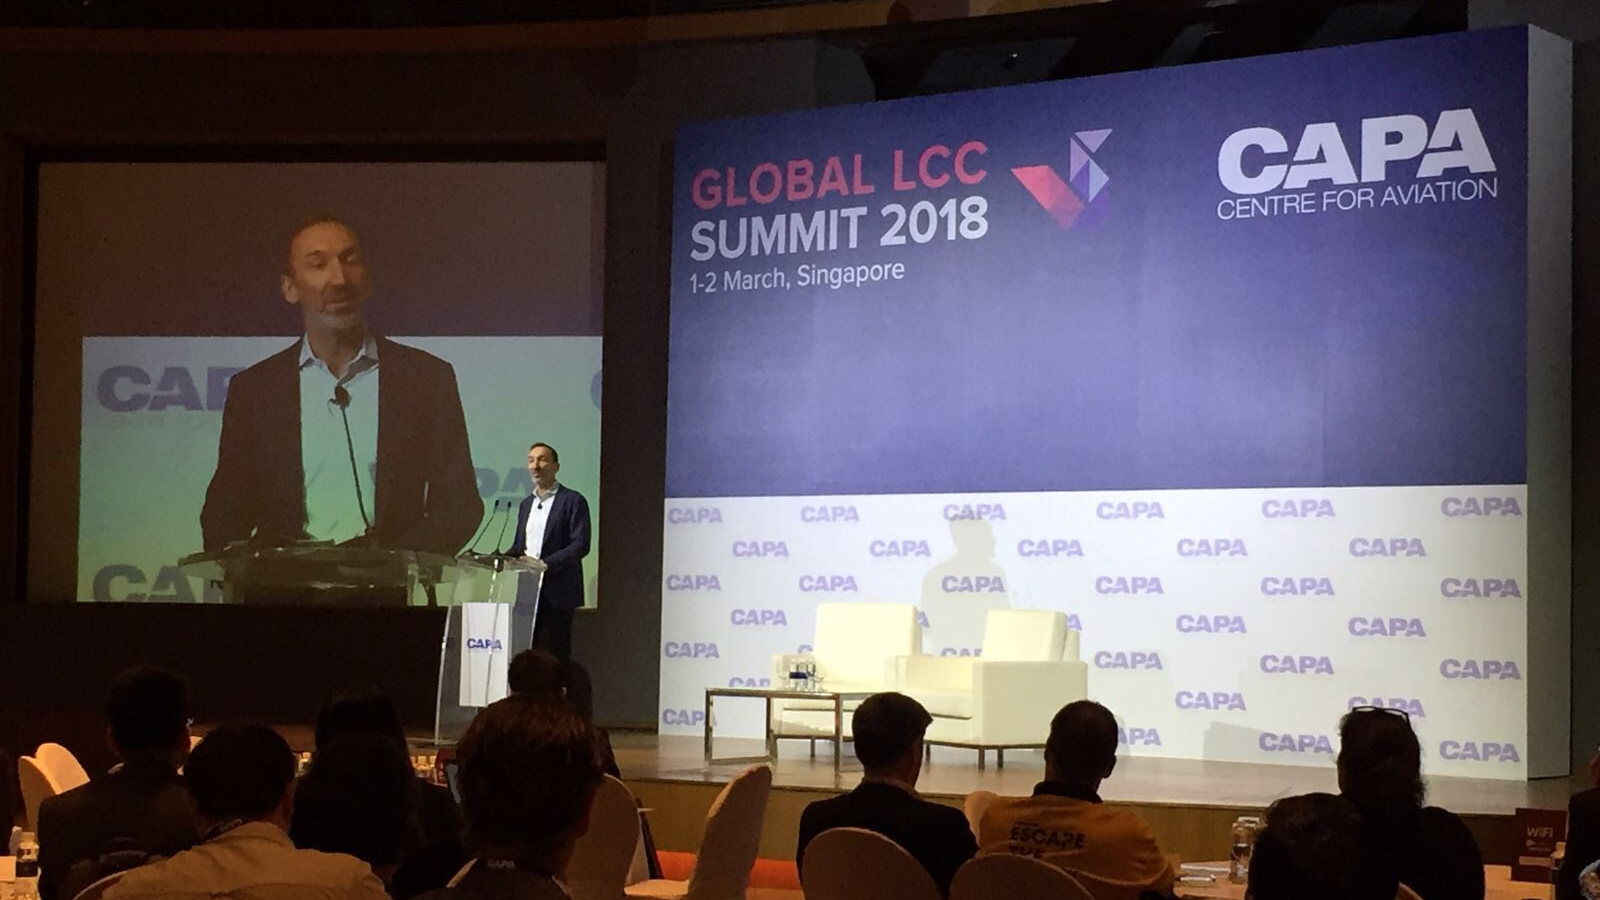 Gareth Evans speaking CAPA Global LCC Summit 2018 in Singapore